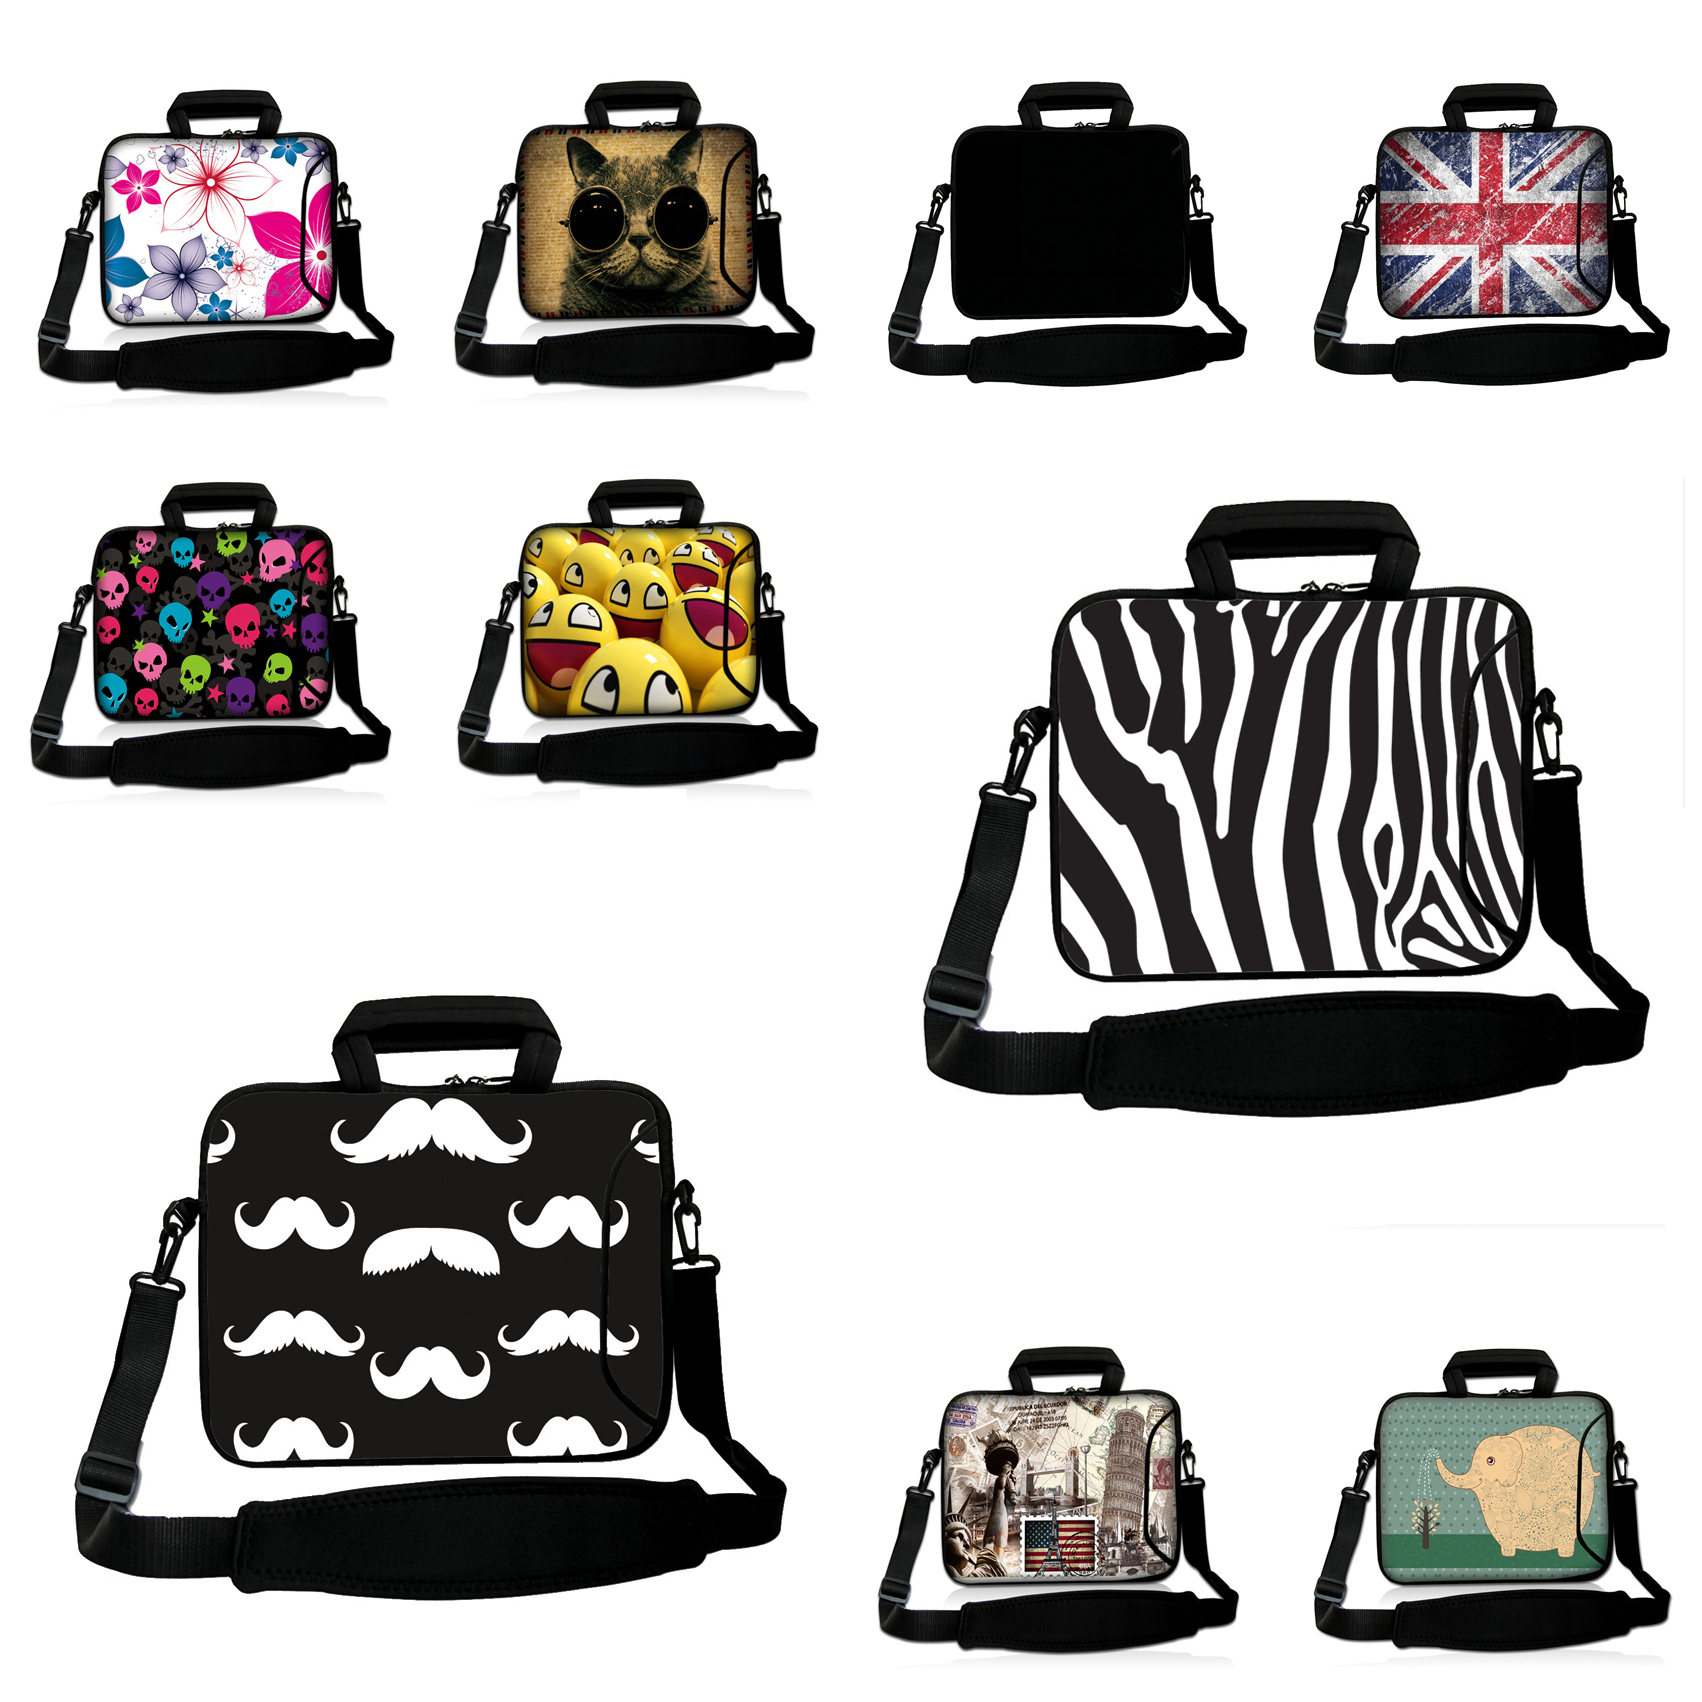 Shockproof Portable Notebook Computer Bag For Women And Men 13.3 Protector Neoprene Briefcase For Mac Book Air/Pro Retina 13